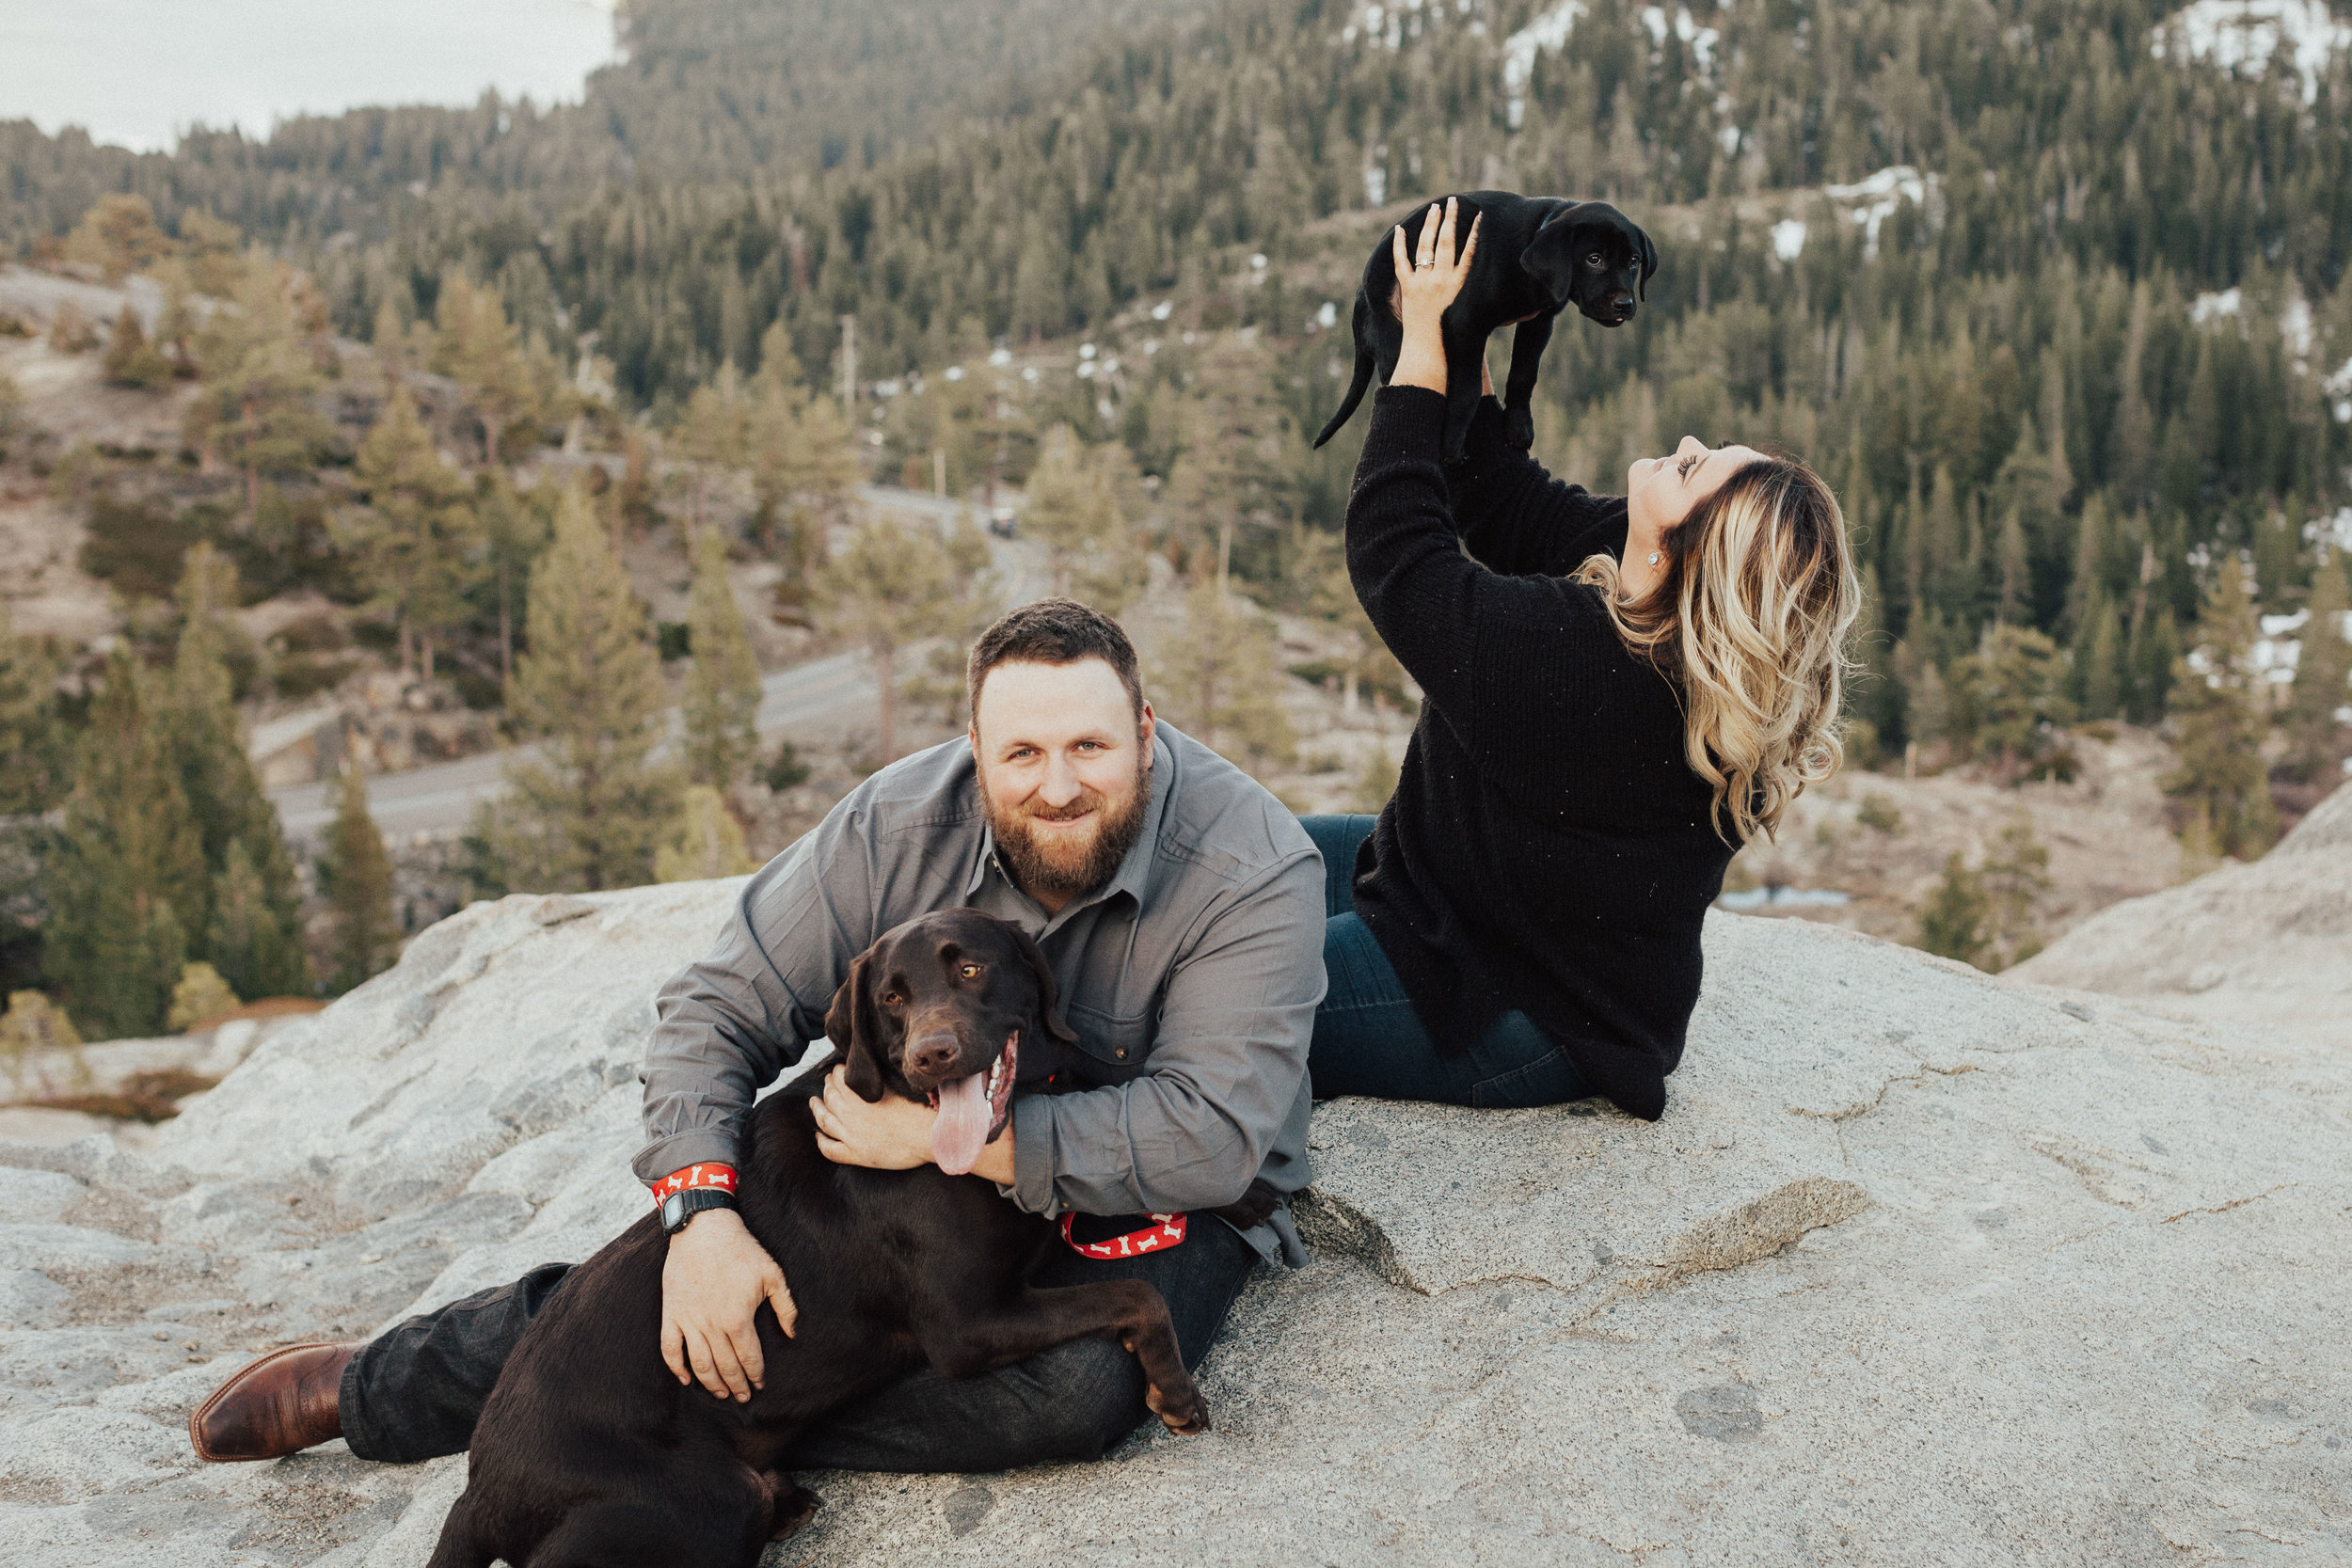 Lab puppies and engagement photos!